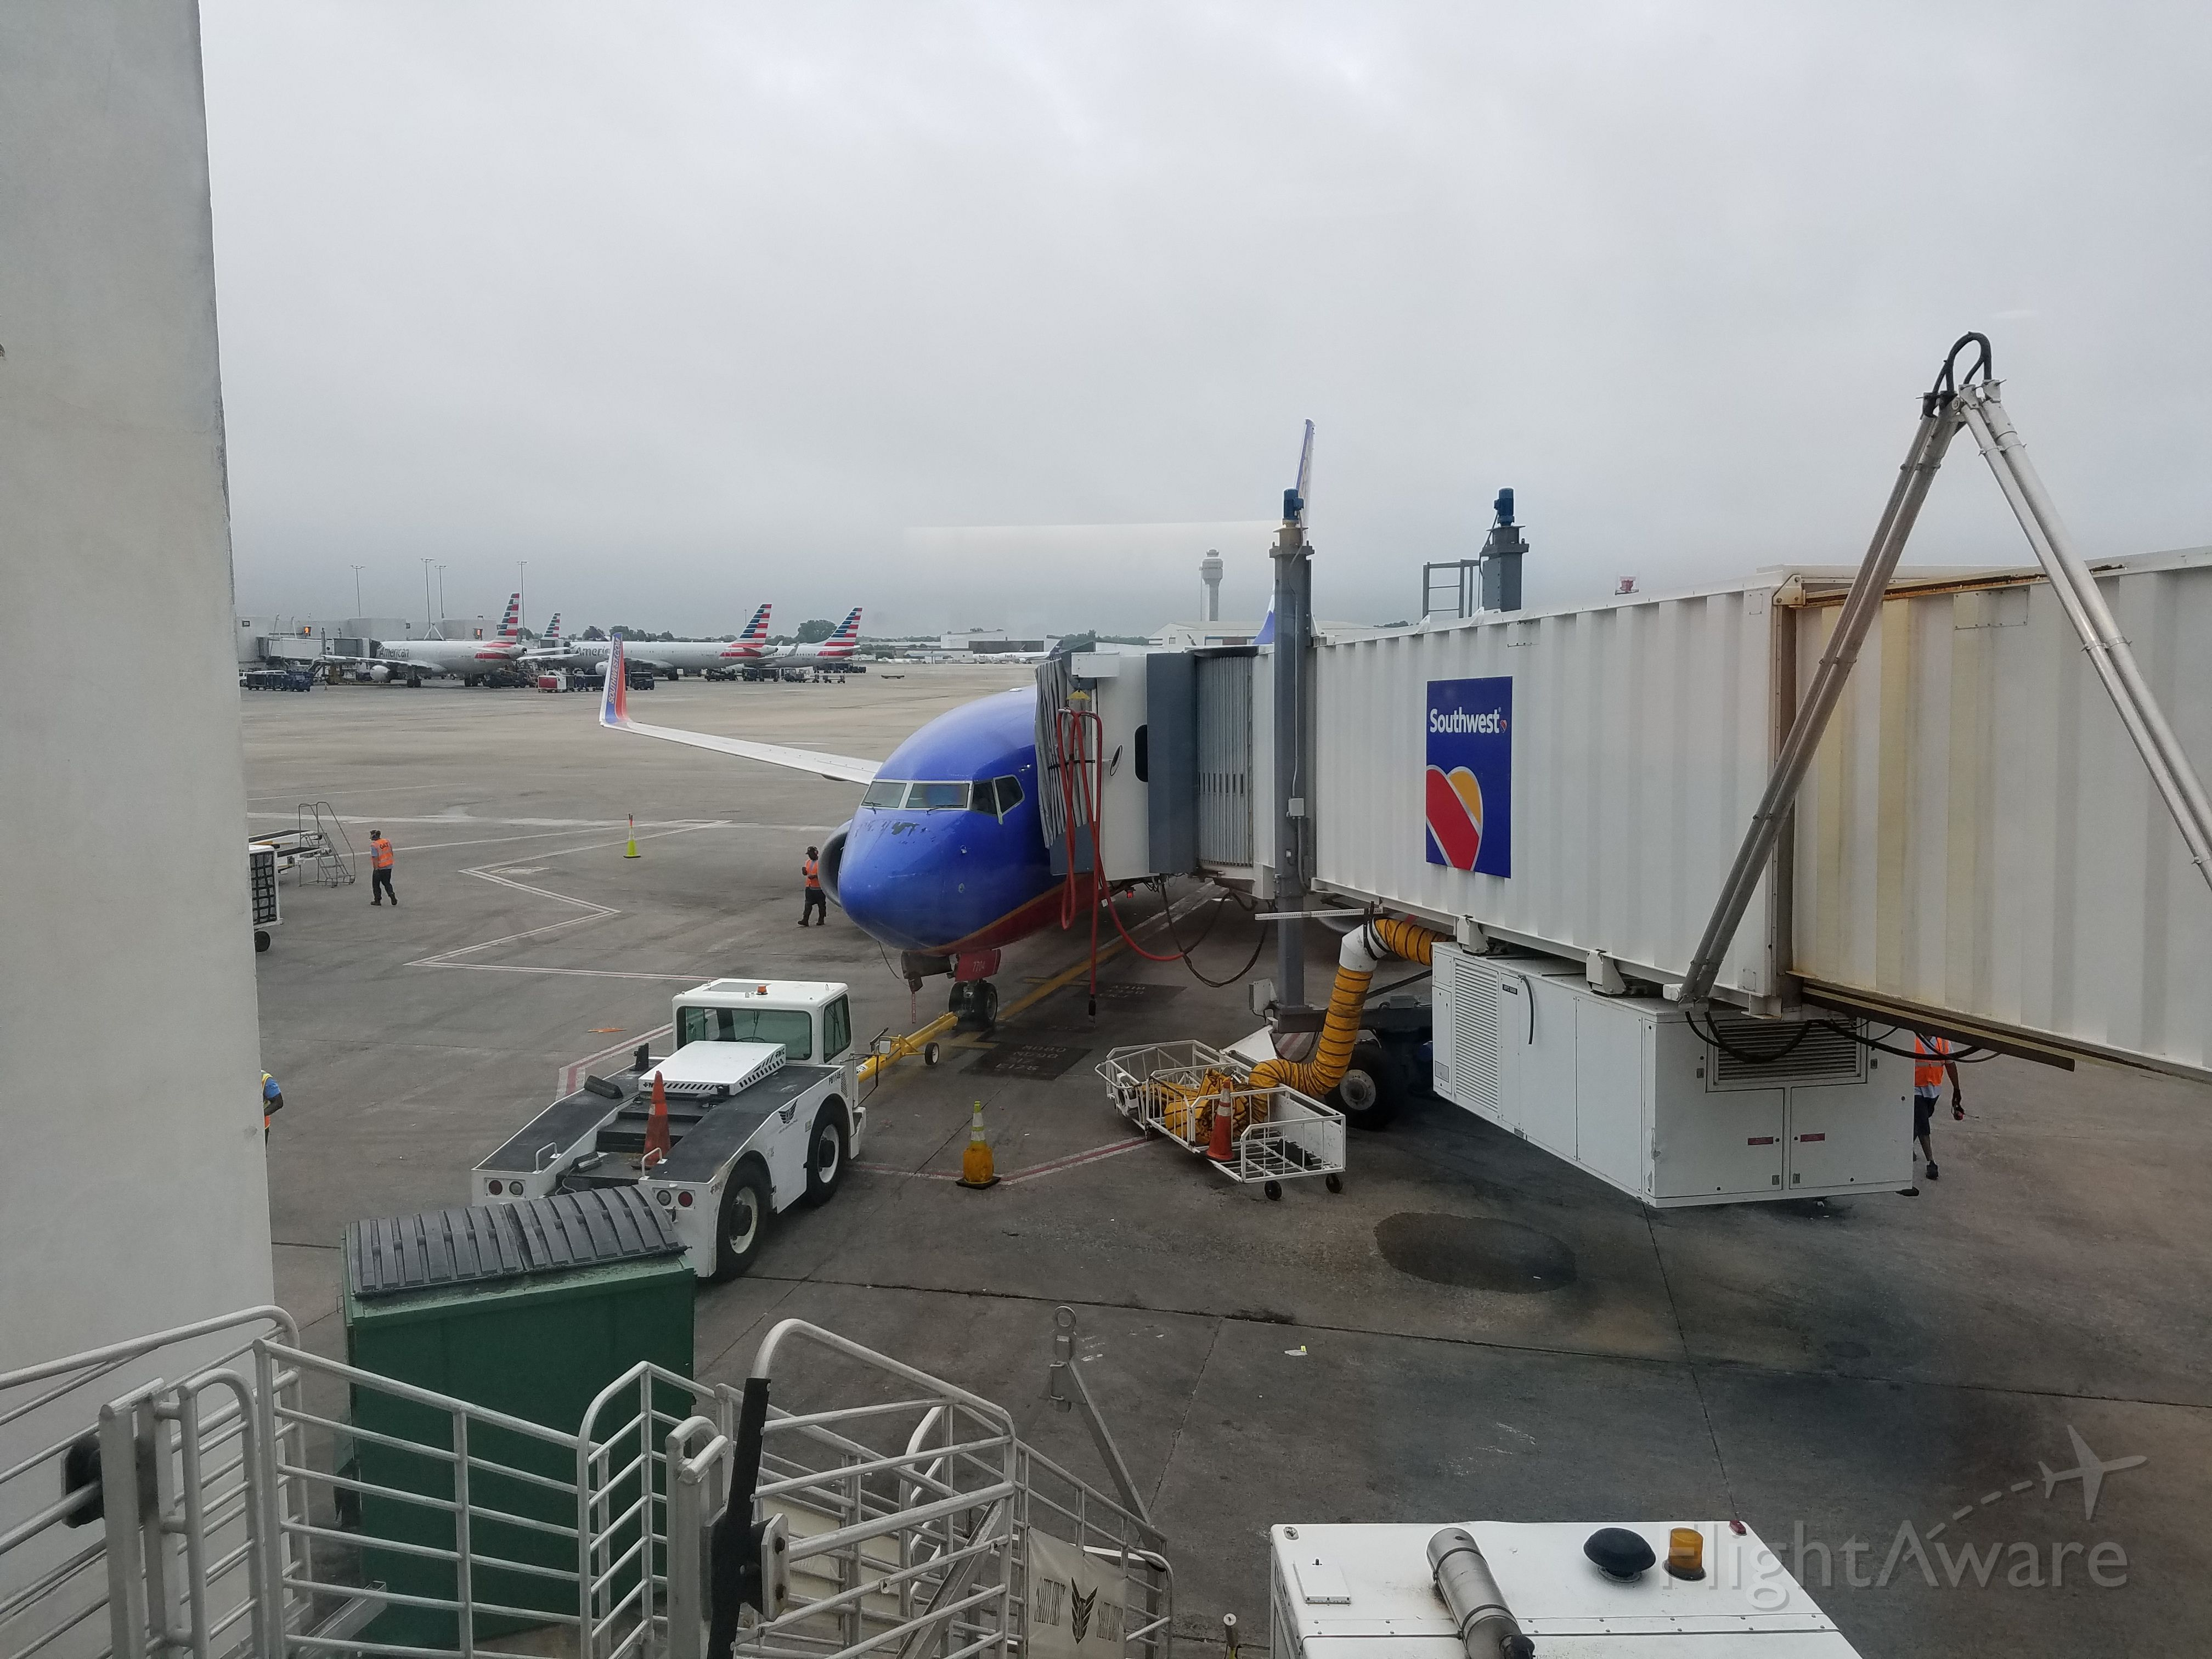 Boeing 737-700 (N7701B) - My flight that would fly me home to BWI.